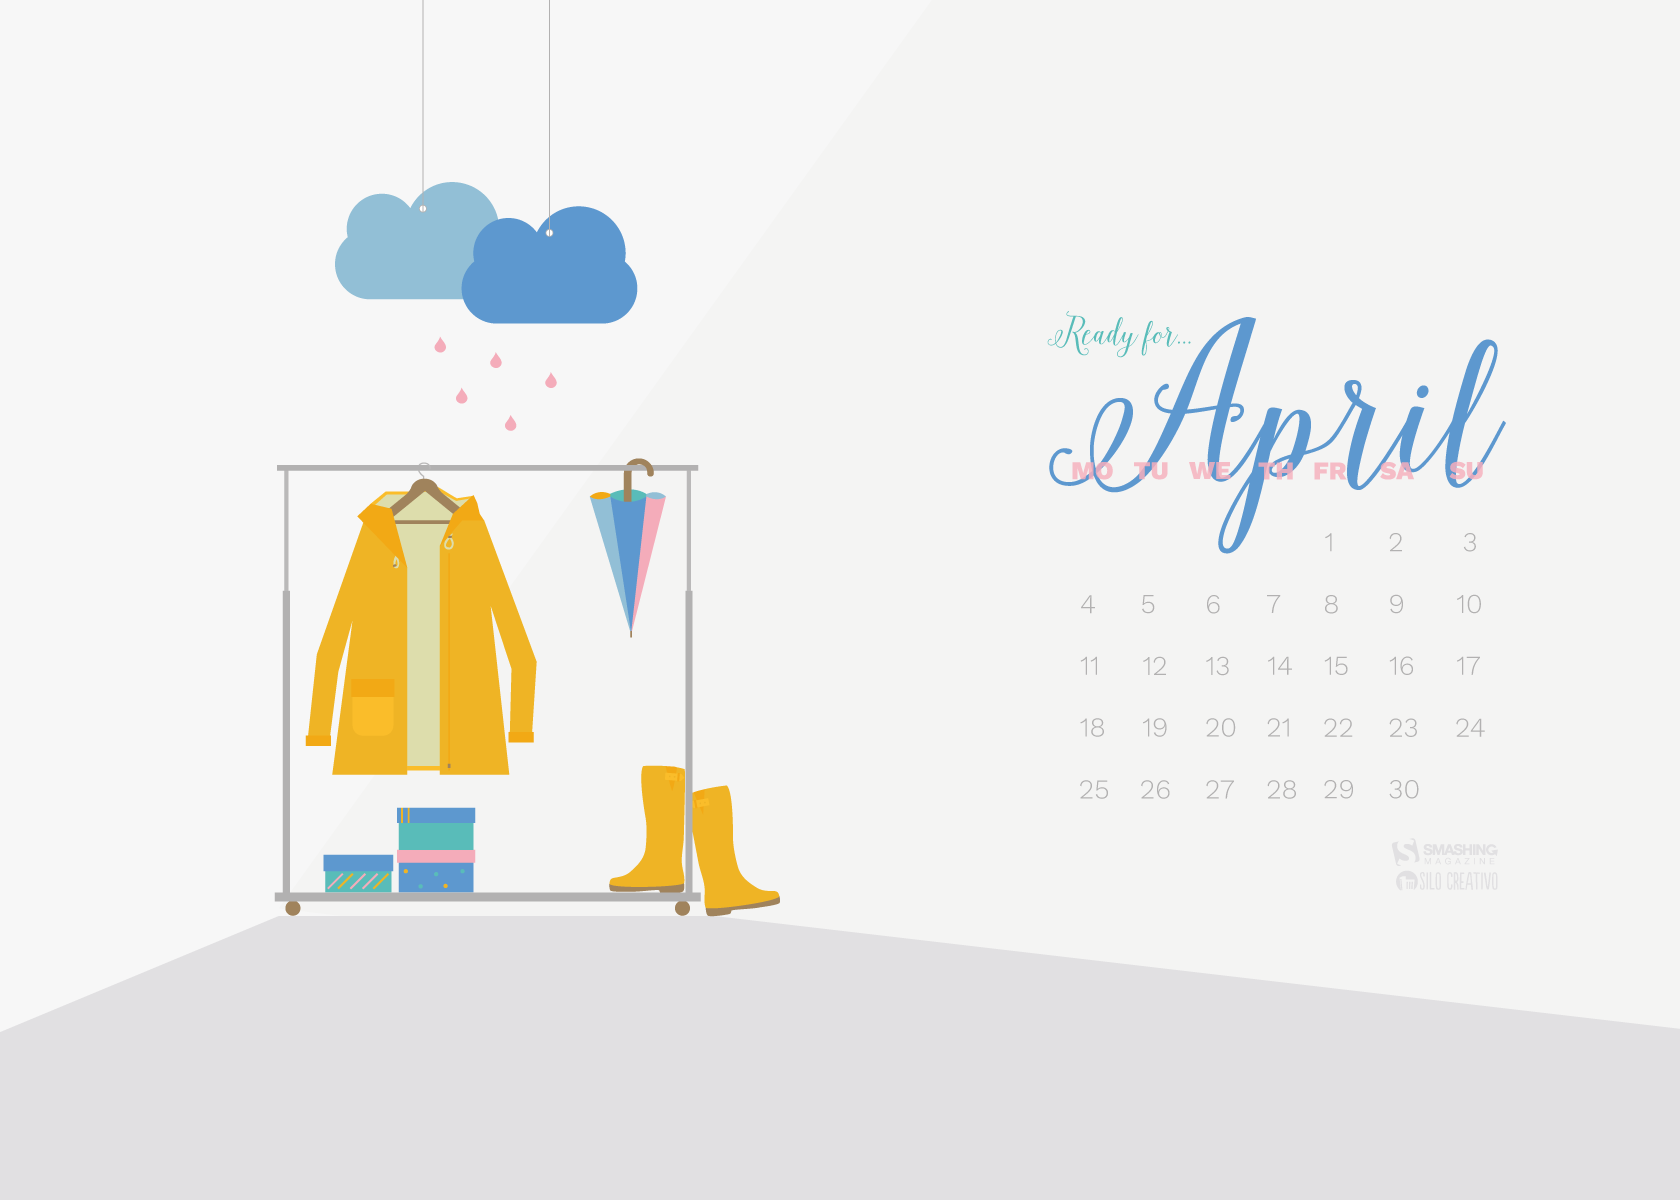 apr-16-ready-for-april-cal-1680x1200